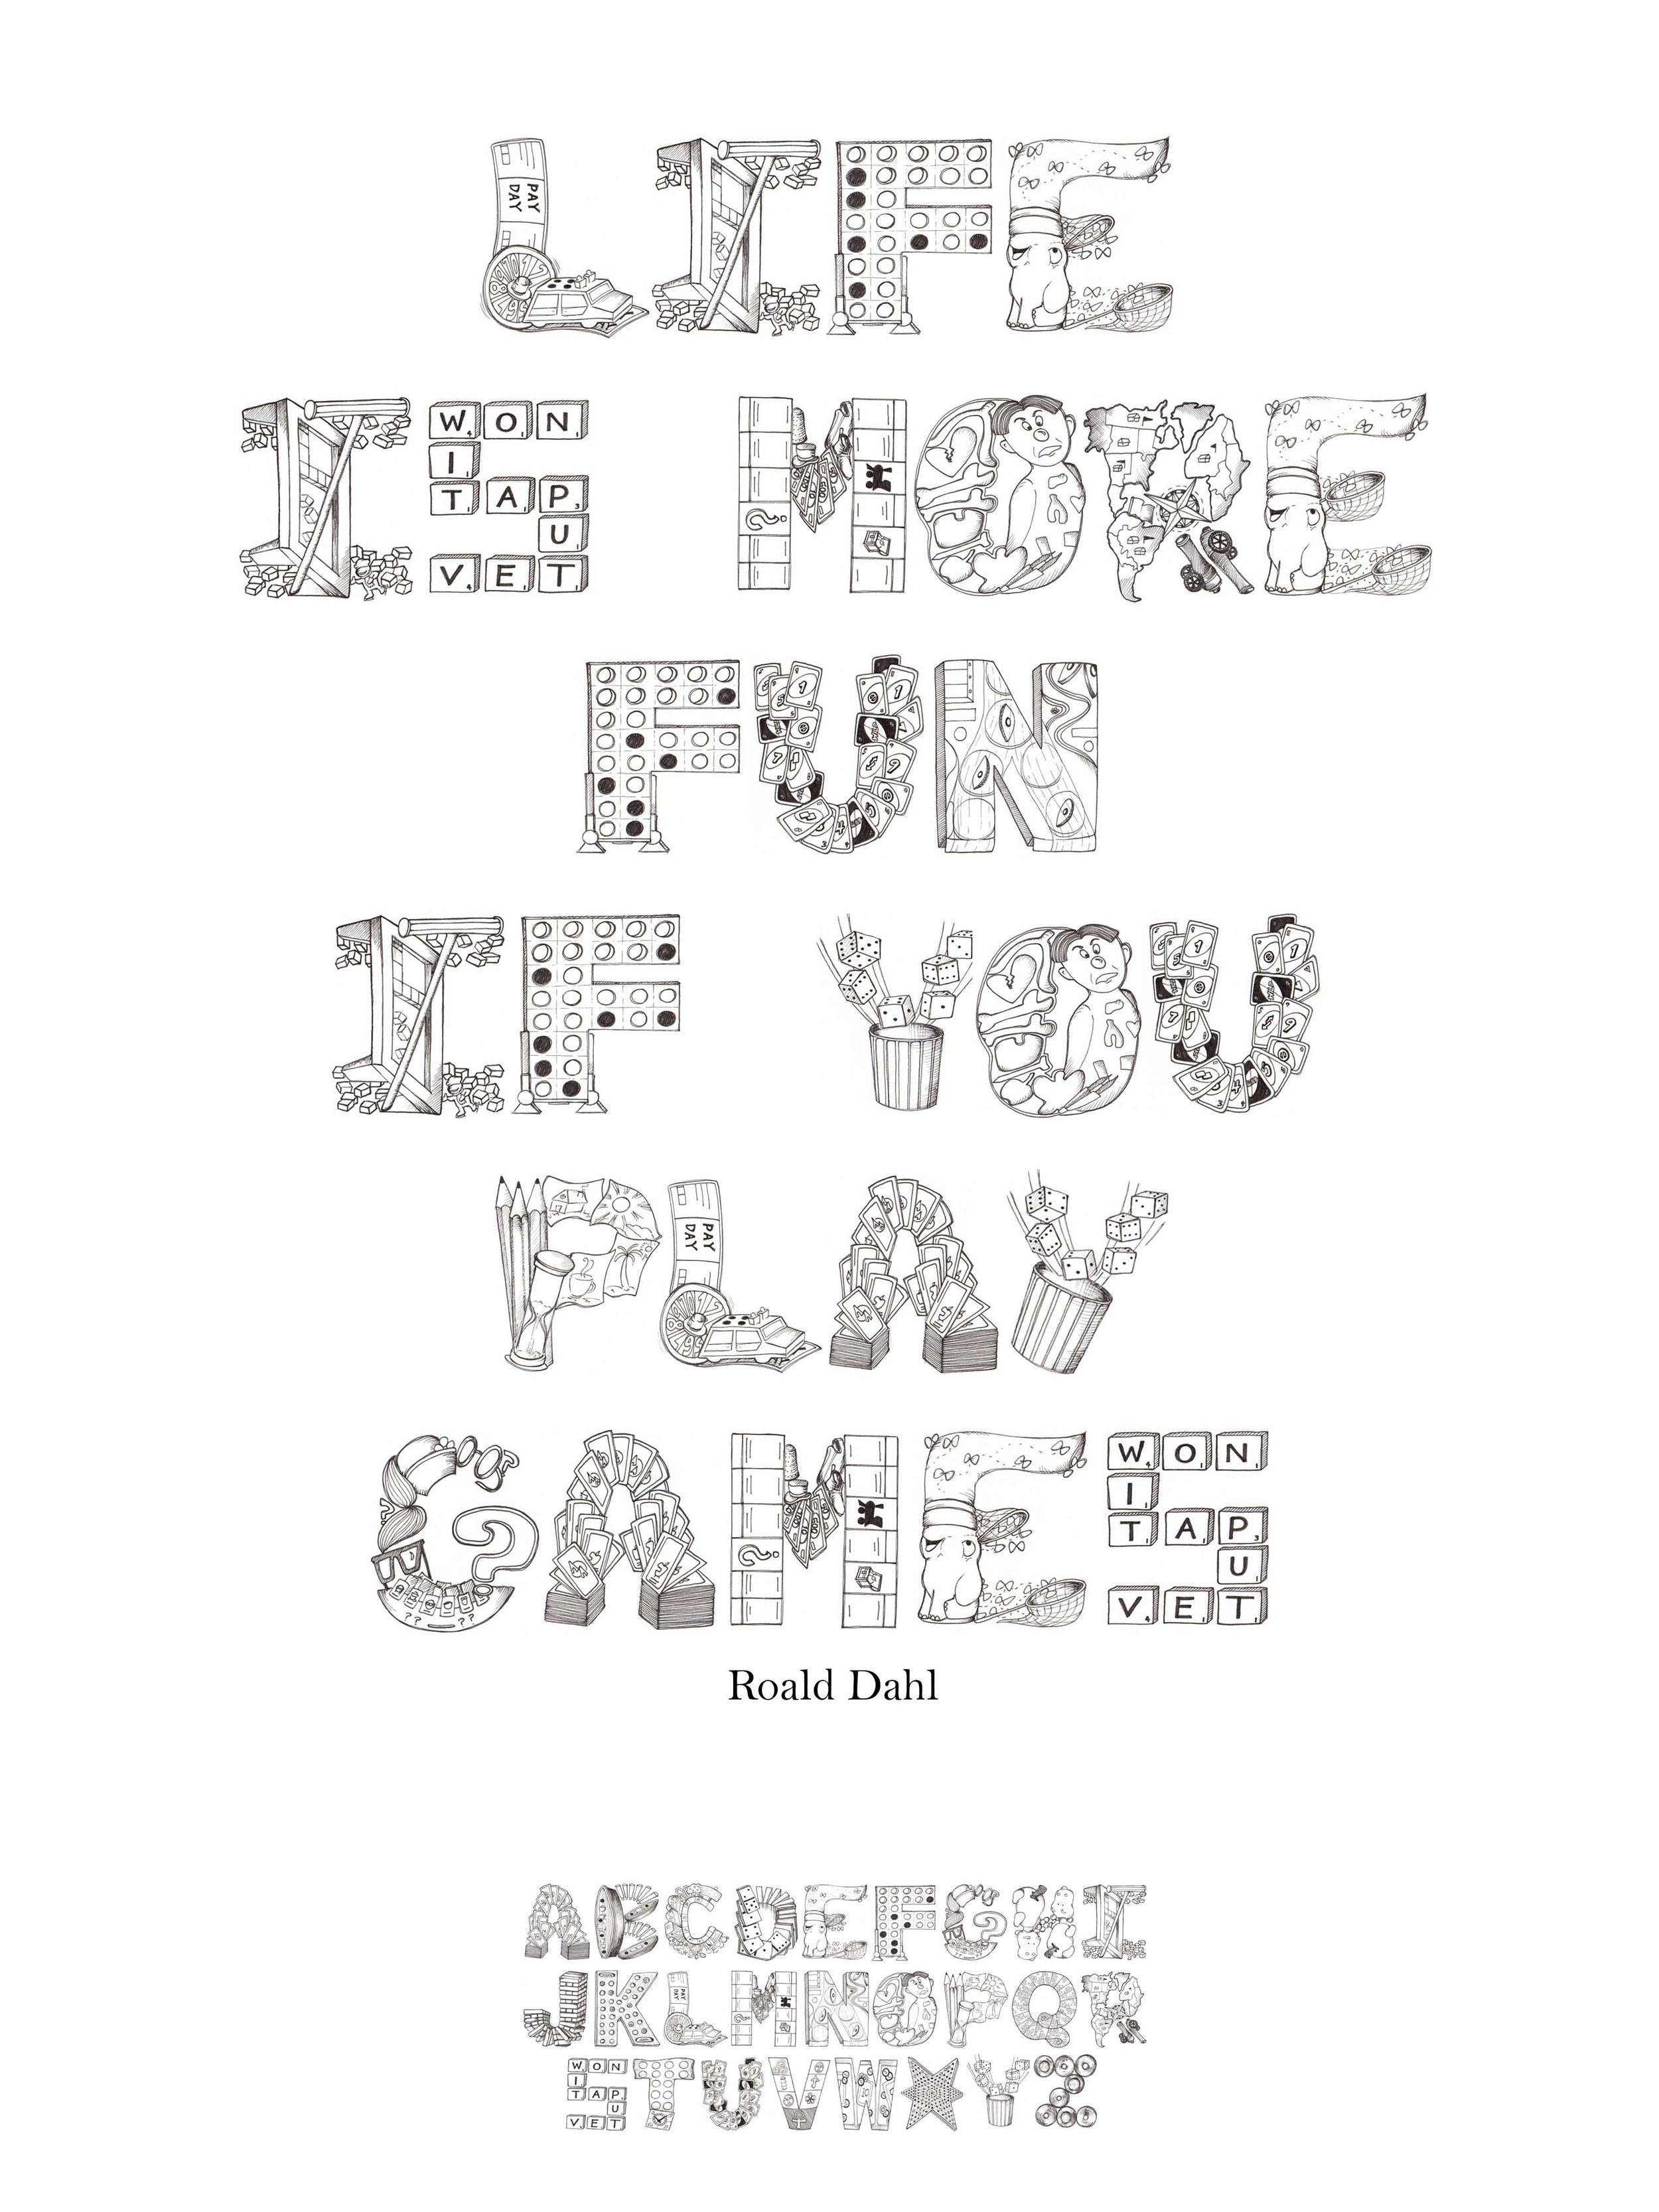 "Board Game Alphabet - This alphabet allows a glimpse into the fun imagination of board games. Each letter correlates with a game that starts with that letter (ie. A is Apples to Apples cards, B is Battleship pieces) The alphabet is hand drawn with Pigma Micron pens. Poster using the alphabet typeset as words. Quote by Roald Dahl ""Life is more fun if you play games"""